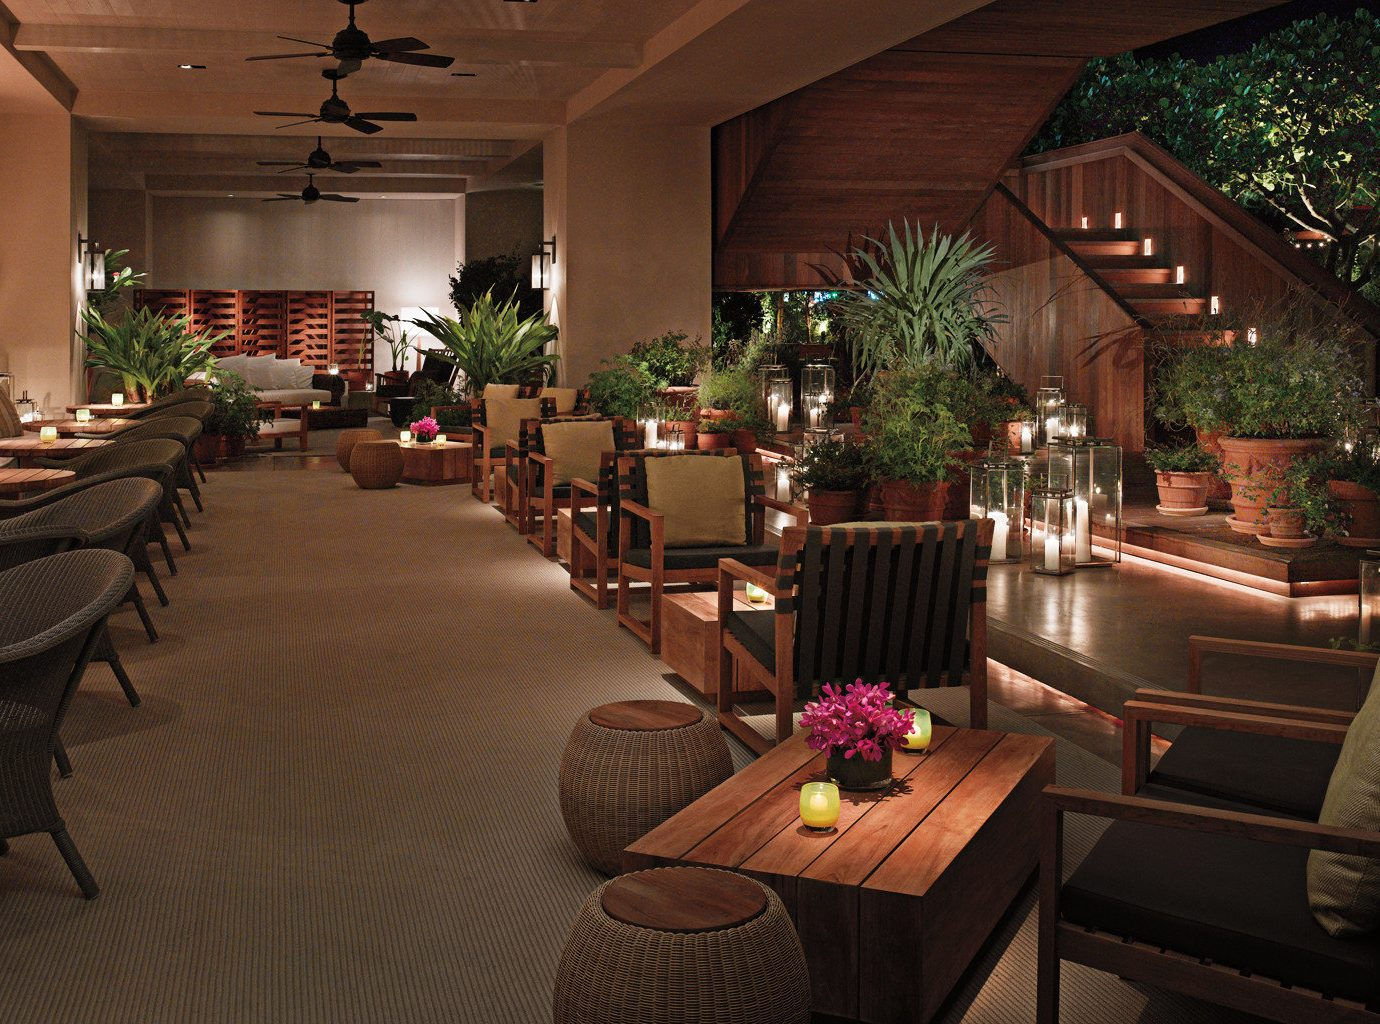 Bar Boutique Hotels Drink Eat Hawaii Honolulu Hotels Island Lounge Modern Outdoors Pool Sunset floor indoor room Living chair Lobby ceiling furniture estate restaurant decorated meal interior design home function hall Resort living room area several